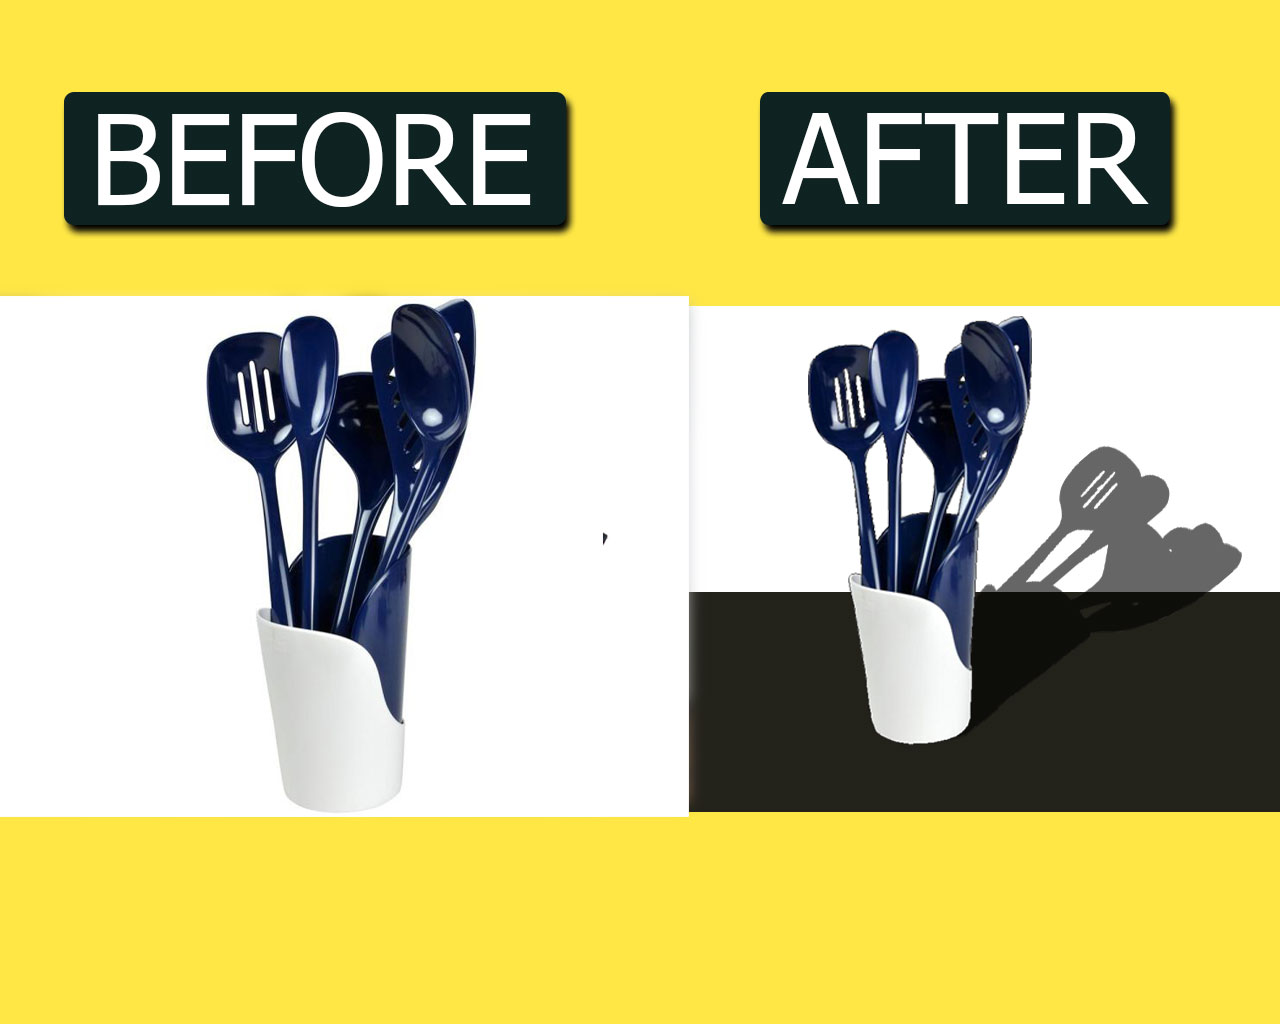 I will do expertise editing and background removal